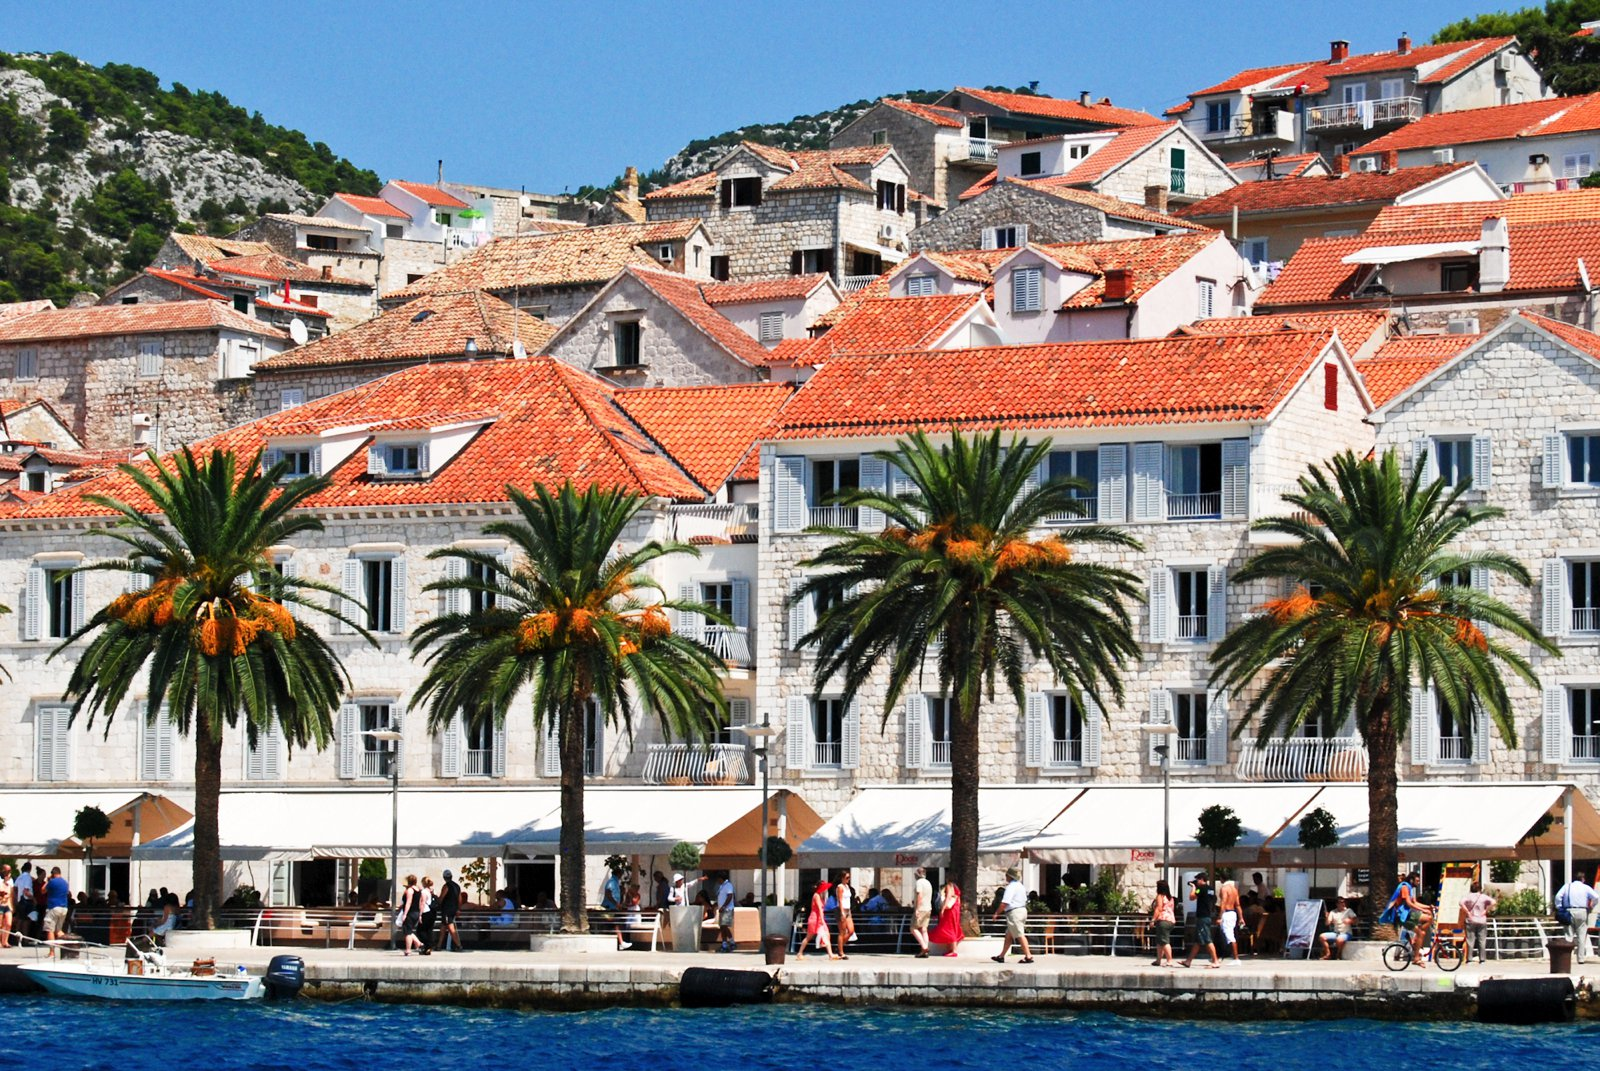 15 Stunning Places You Have To Visit In Croatia (11)